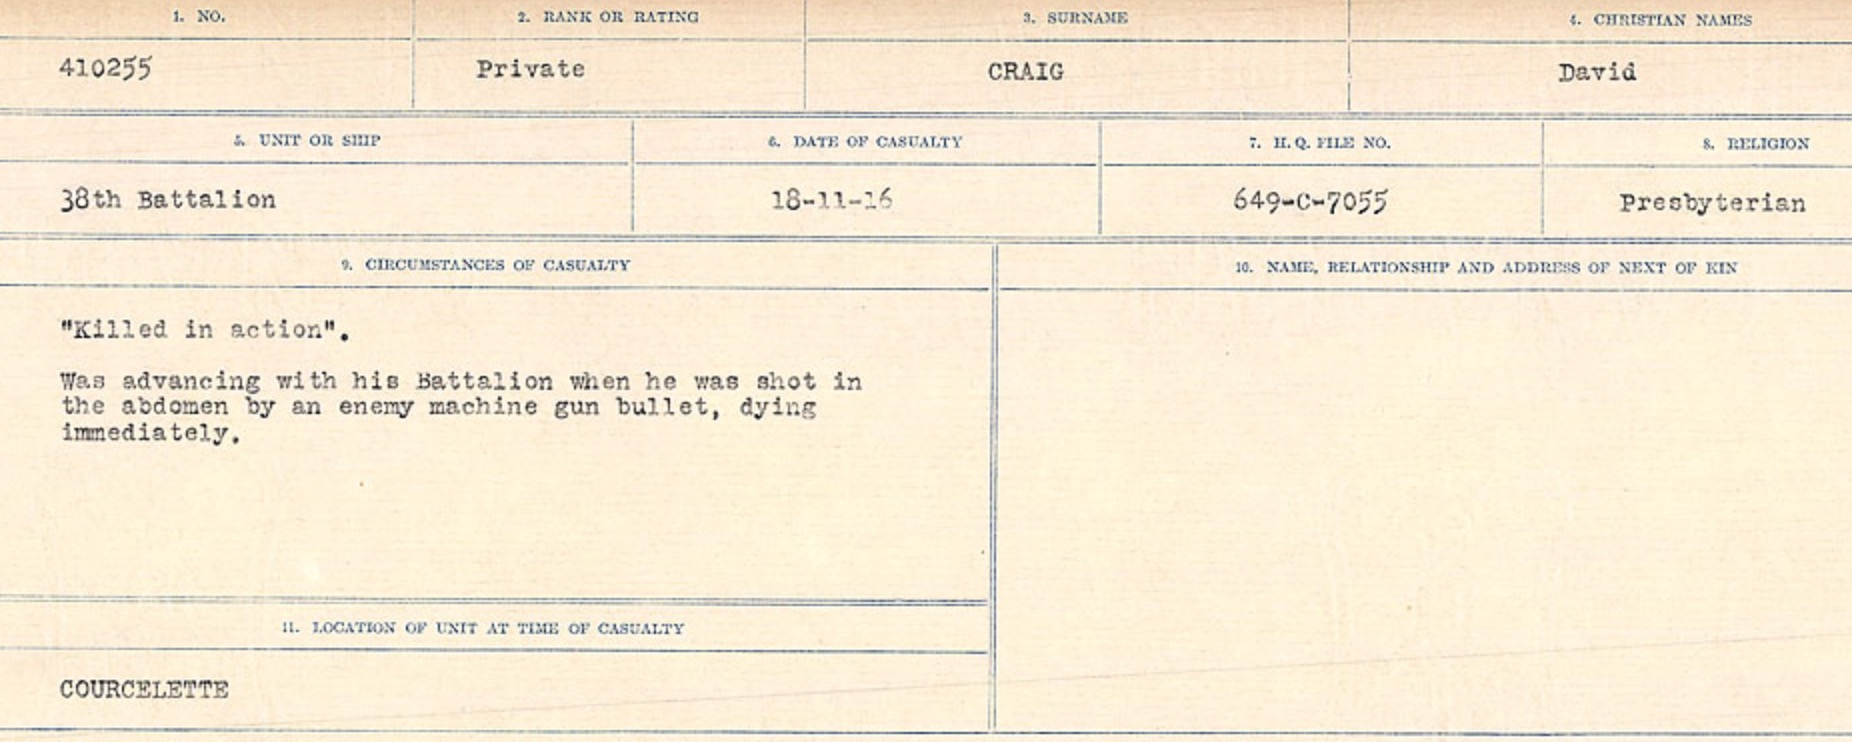 Circumstances of Death Registers– Source: Library and Archives Canada. CIRCUMSTANCES OF DEATH REGISTERS, FIRST WORLD WAR Surnames: CRABB TO CROSSLAND Microform Sequence 24; Volume Number 31829_B016733. Reference RG150, 1992-93/314, 168. Page 69  of 788.